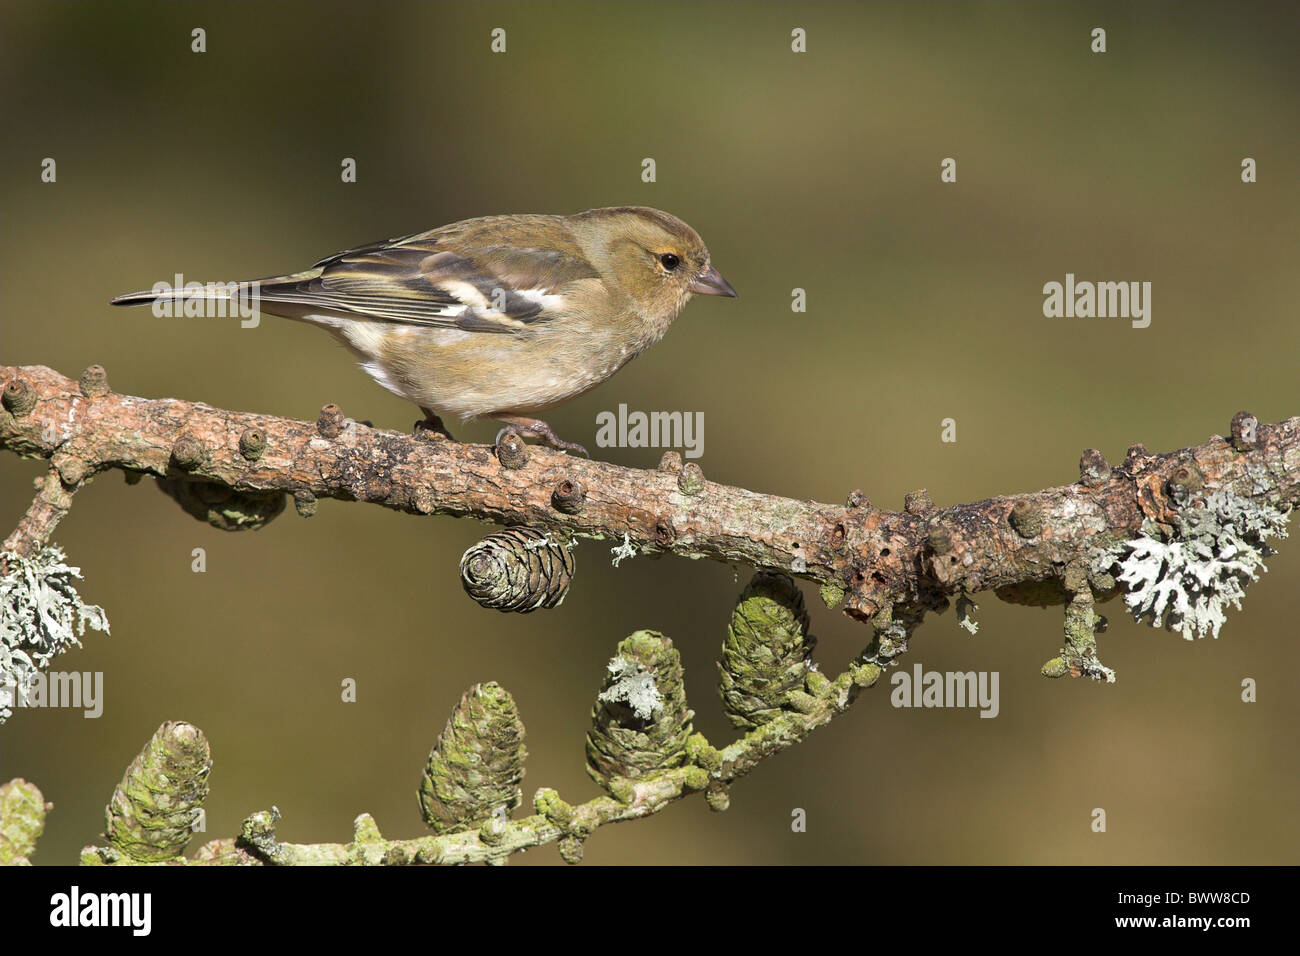 Chaffinch (Fringilla coelebs) adult female, perched on larch tree branch, Borders, Scotland, winter - Stock Image